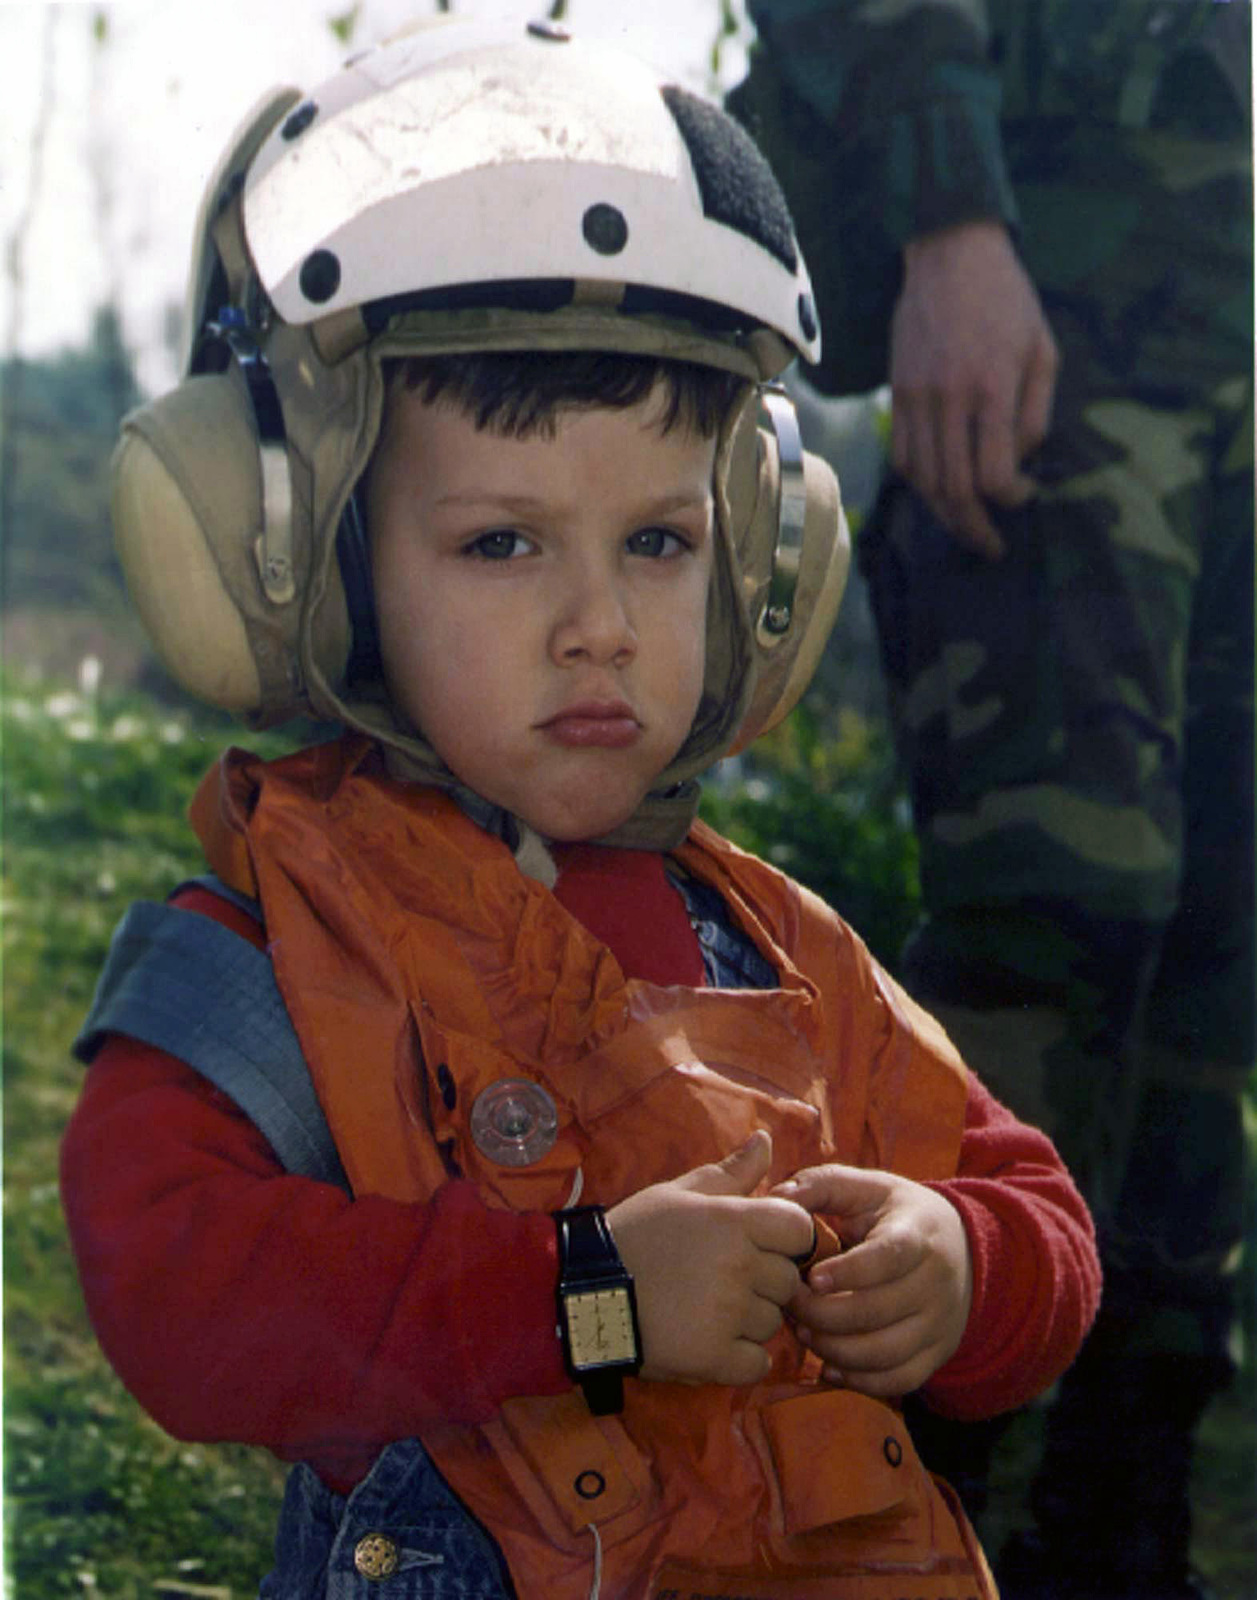 An American child awaits the evacuation flight from the US Embassy in Tirana, Albania, to the USS Nassau during Operation SILVER WAKE. 26th Marine Expeditionary Unit (Special Operations Capable) (MEU (SOC)) was called upon to perform a NEO (Non-combatant Evacuation Operation) of US citizens that desired to leave Albania, due to the current civil strife